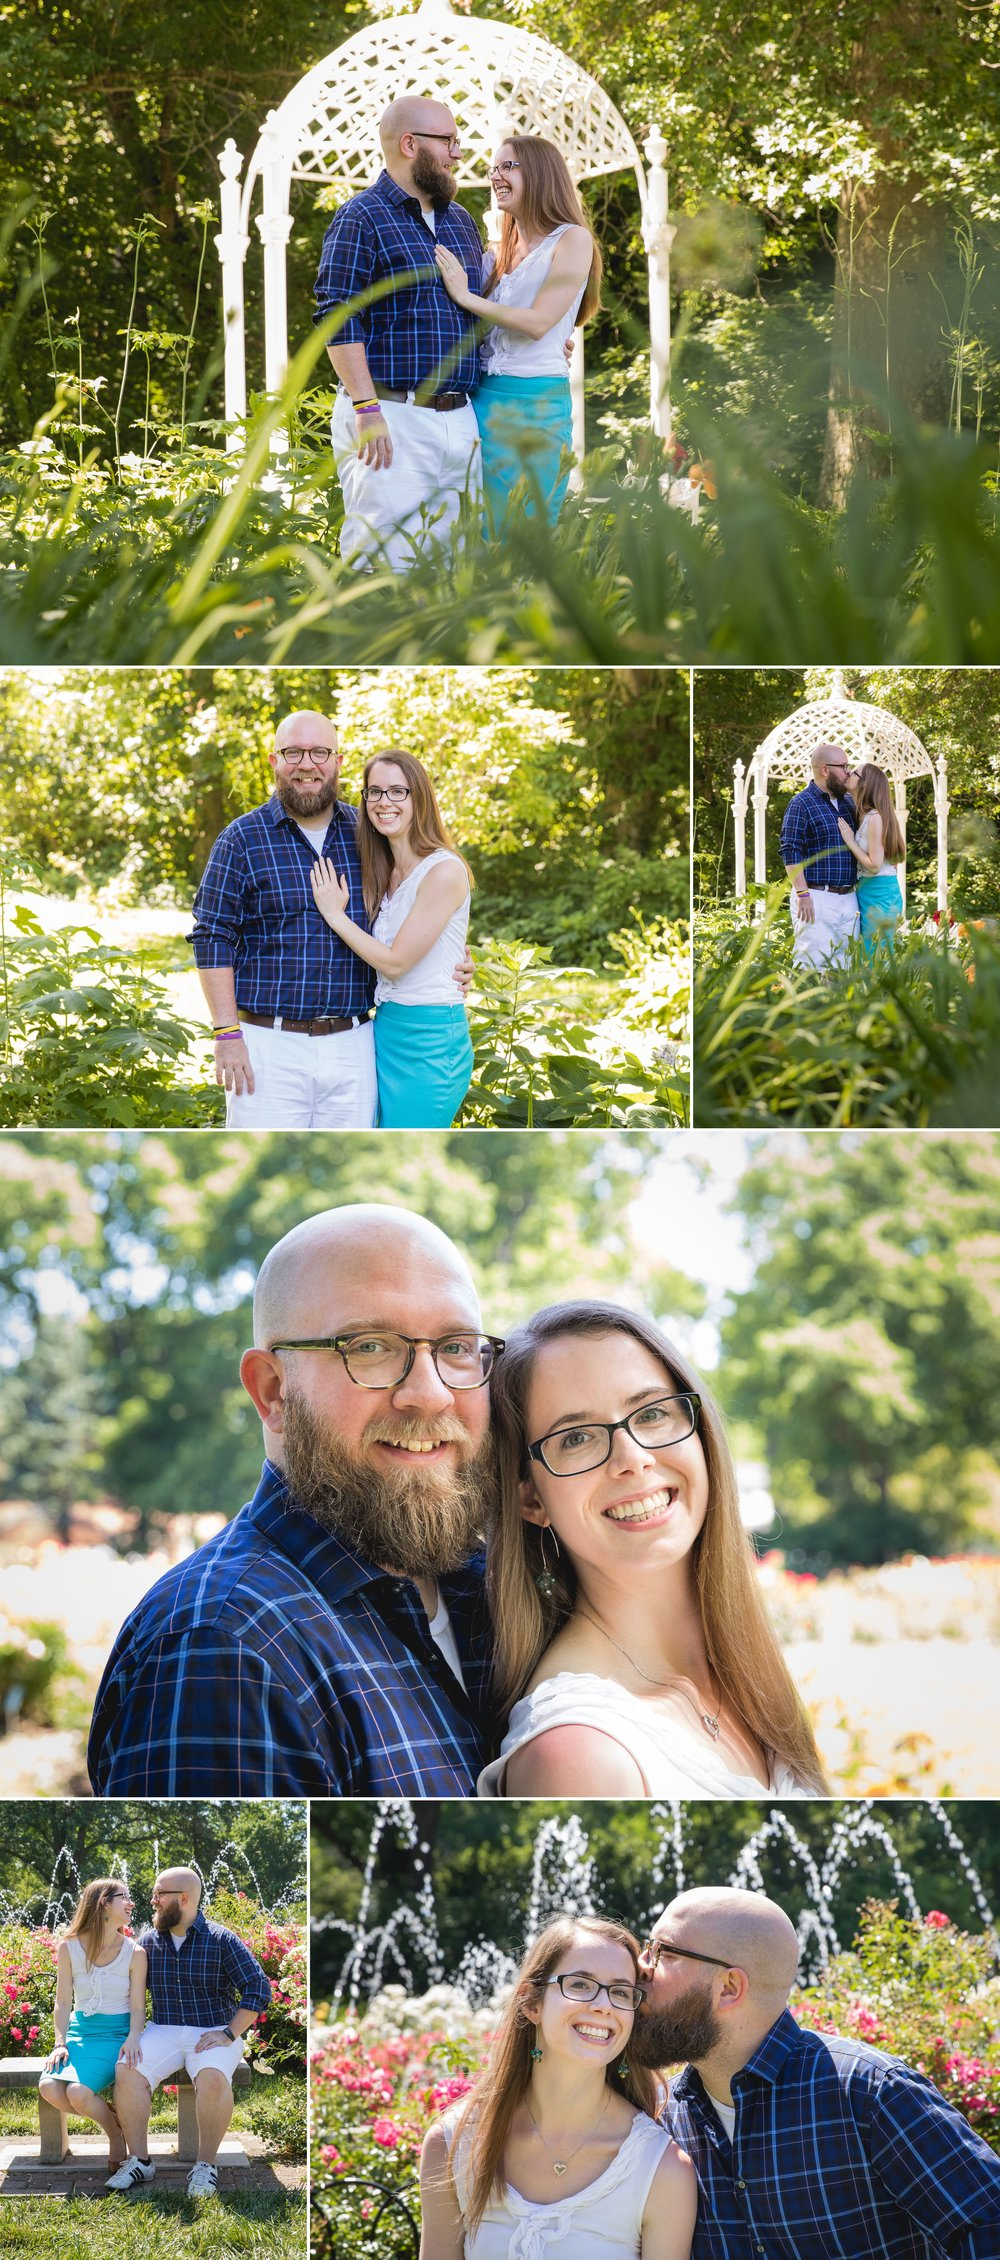 summer-engagement-portrait-session-park-of-roses-clintonville-columbus-ohio-muschlitz-photography-001.JPG